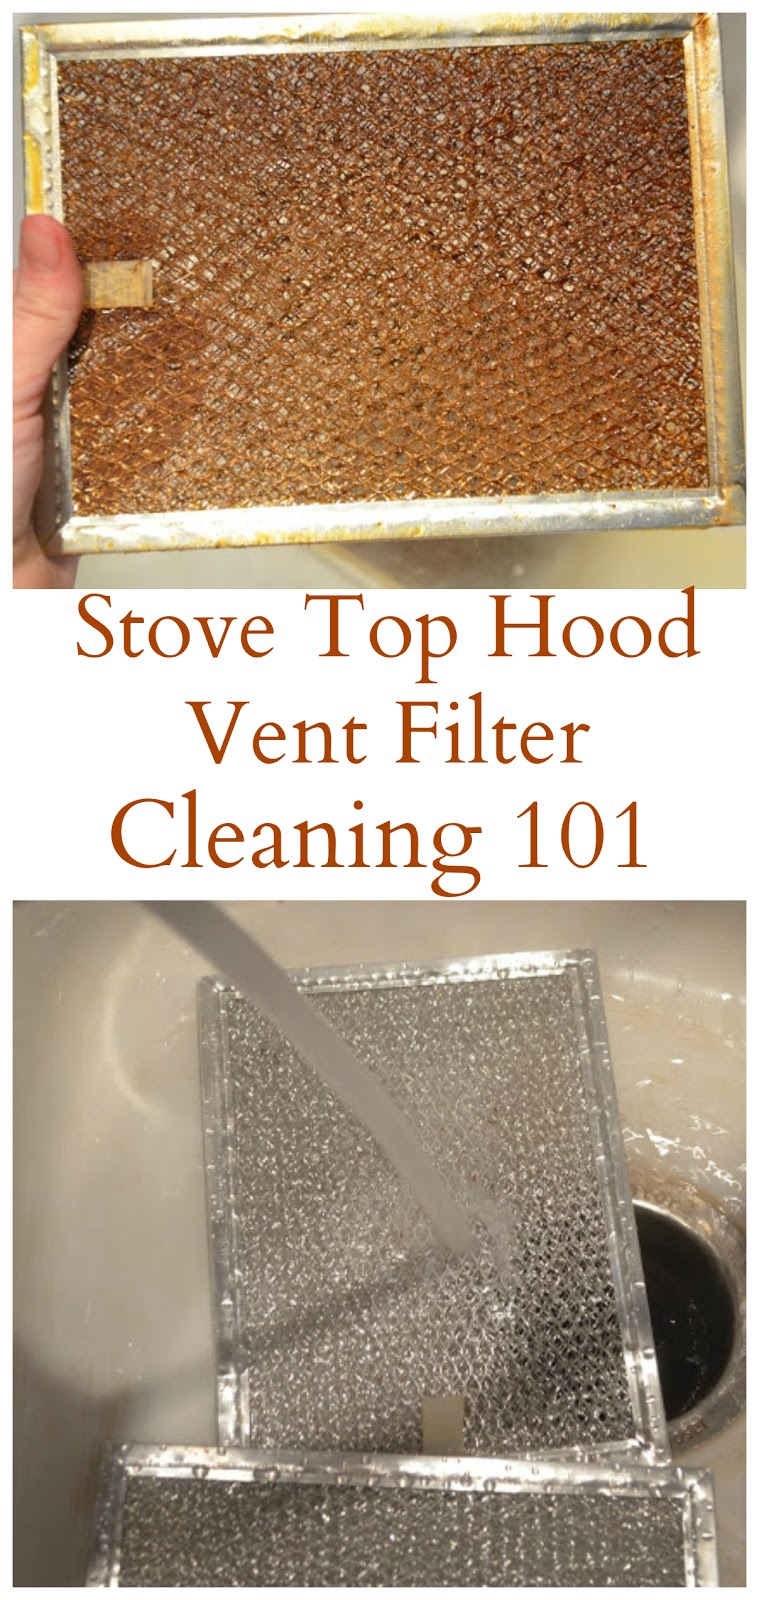 http://www.serenabakessimplyfromscratch.com/2013/01/stove-top-hood-vent-filter-cleaning-101.html